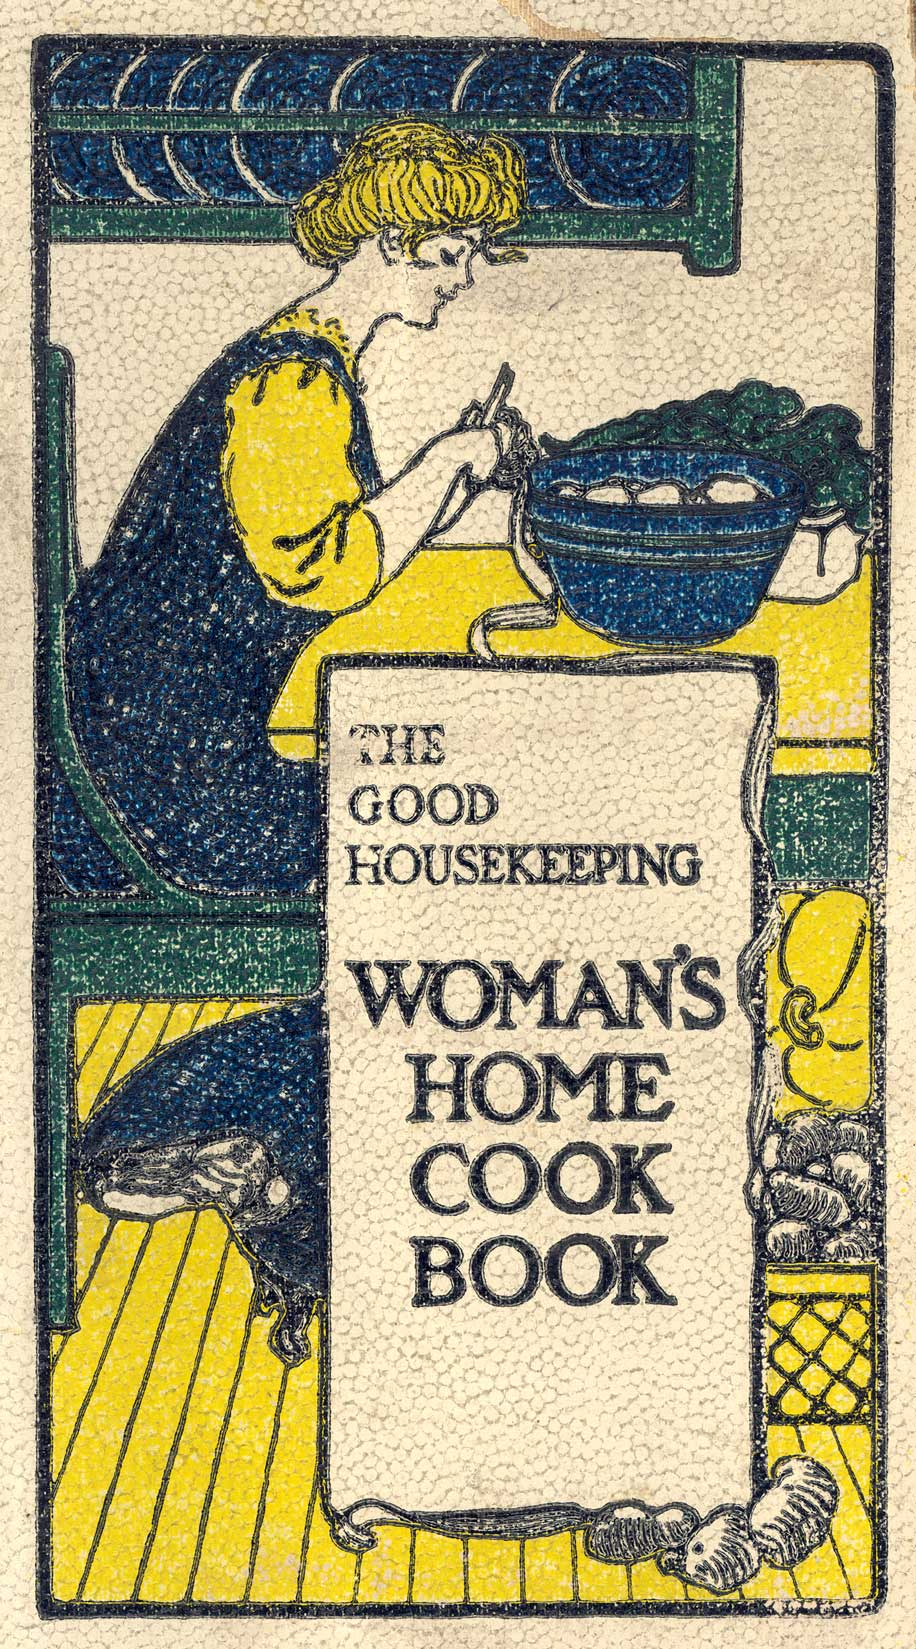 Book cover - The Good Housekeeping Woman's Home Cook Book